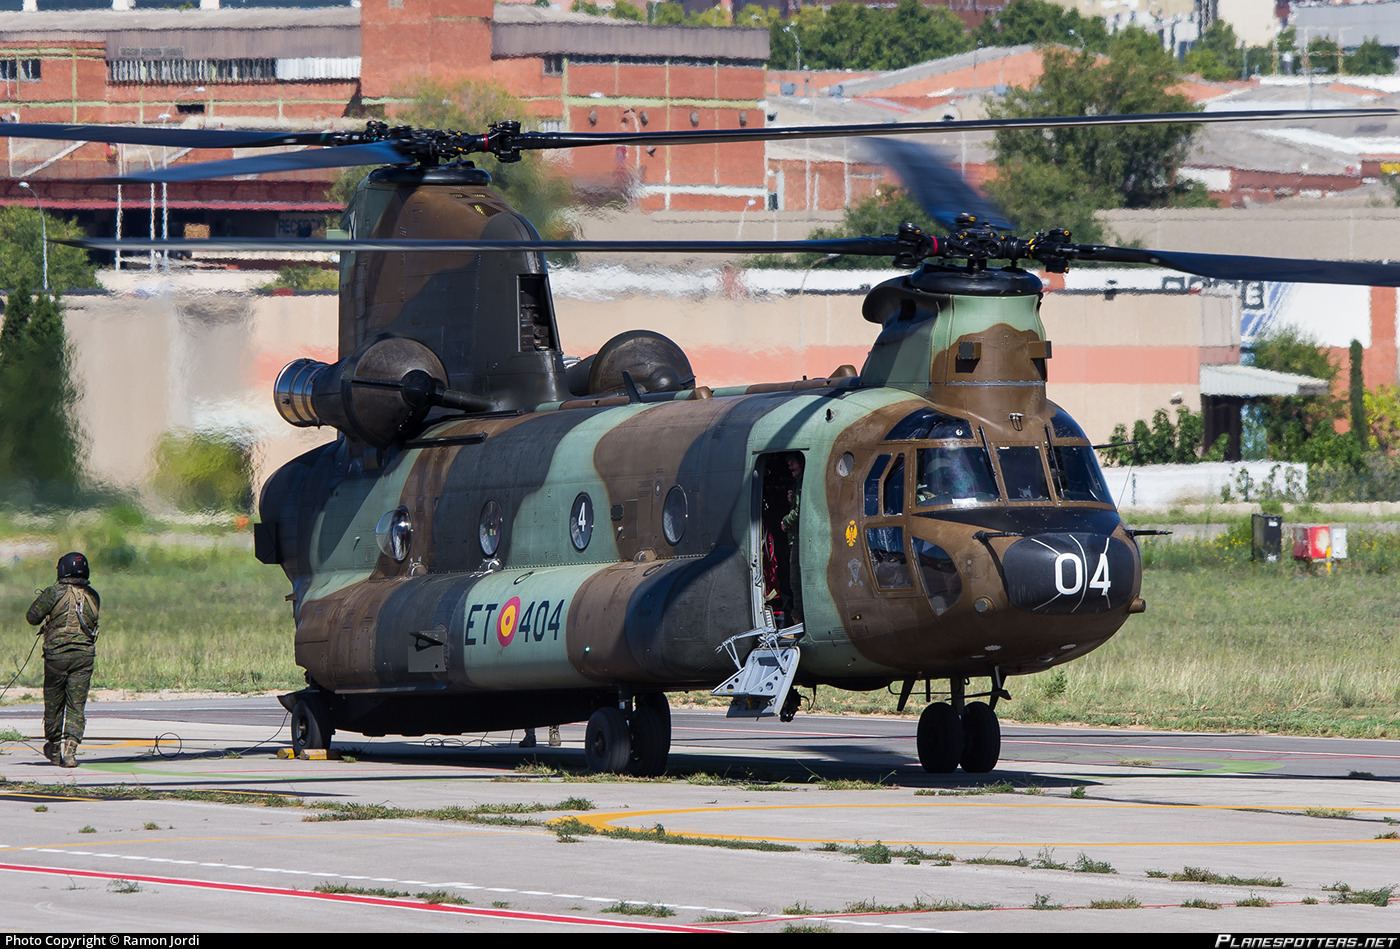 HT.17-04 Fuerza Aerea Española (Spanish Air Force) [AME], Spain Boeing CH-47D Chinook photographed at Sabadell (QSA / LELL) by Ramon Jordi